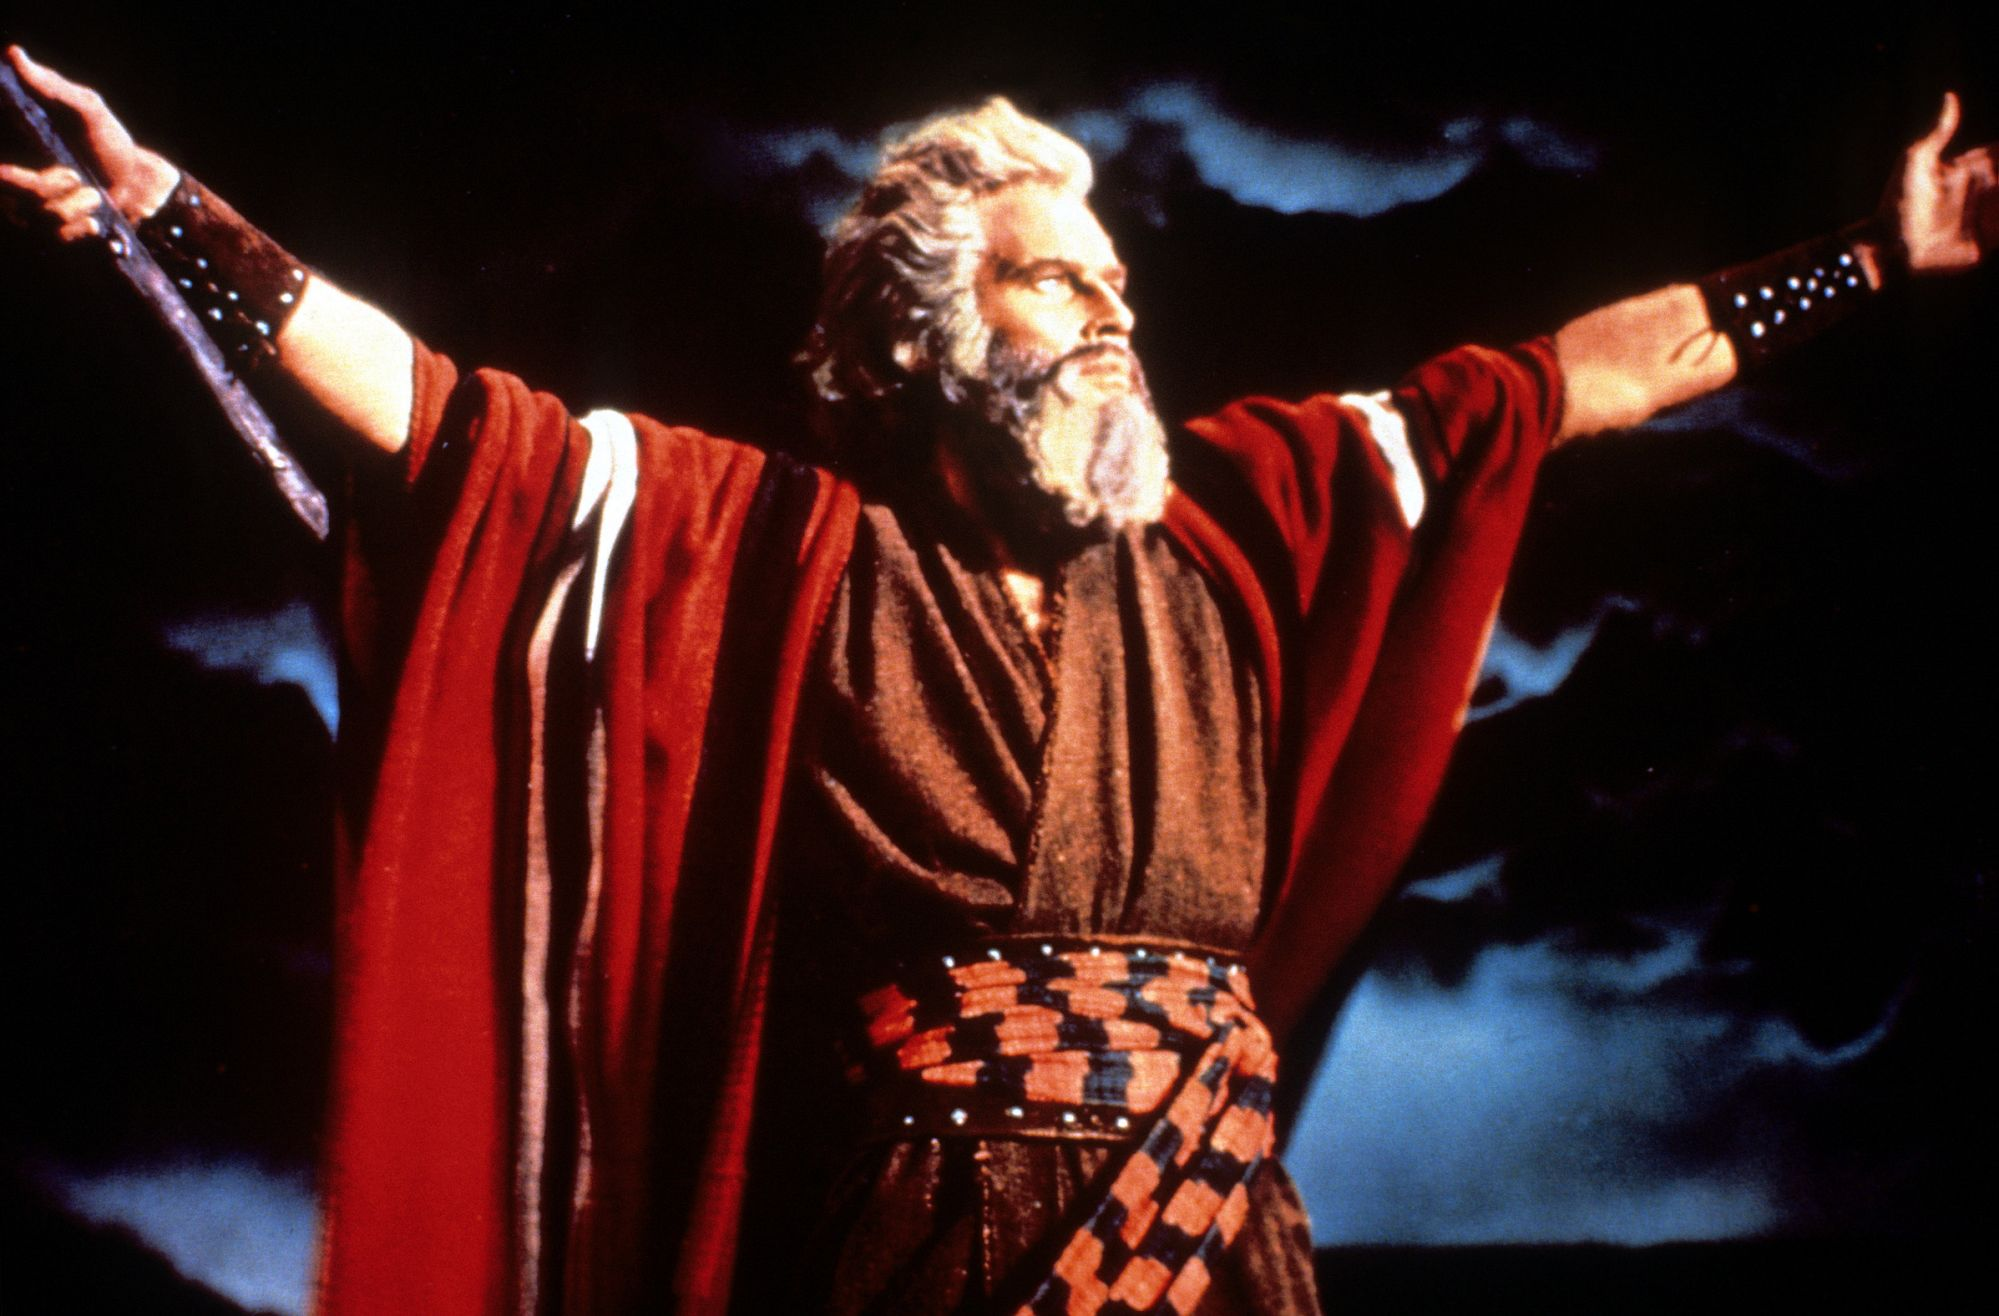 Charlton Heston's son discusses 'The Ten Commandments' and his father's controversial support of the NRA